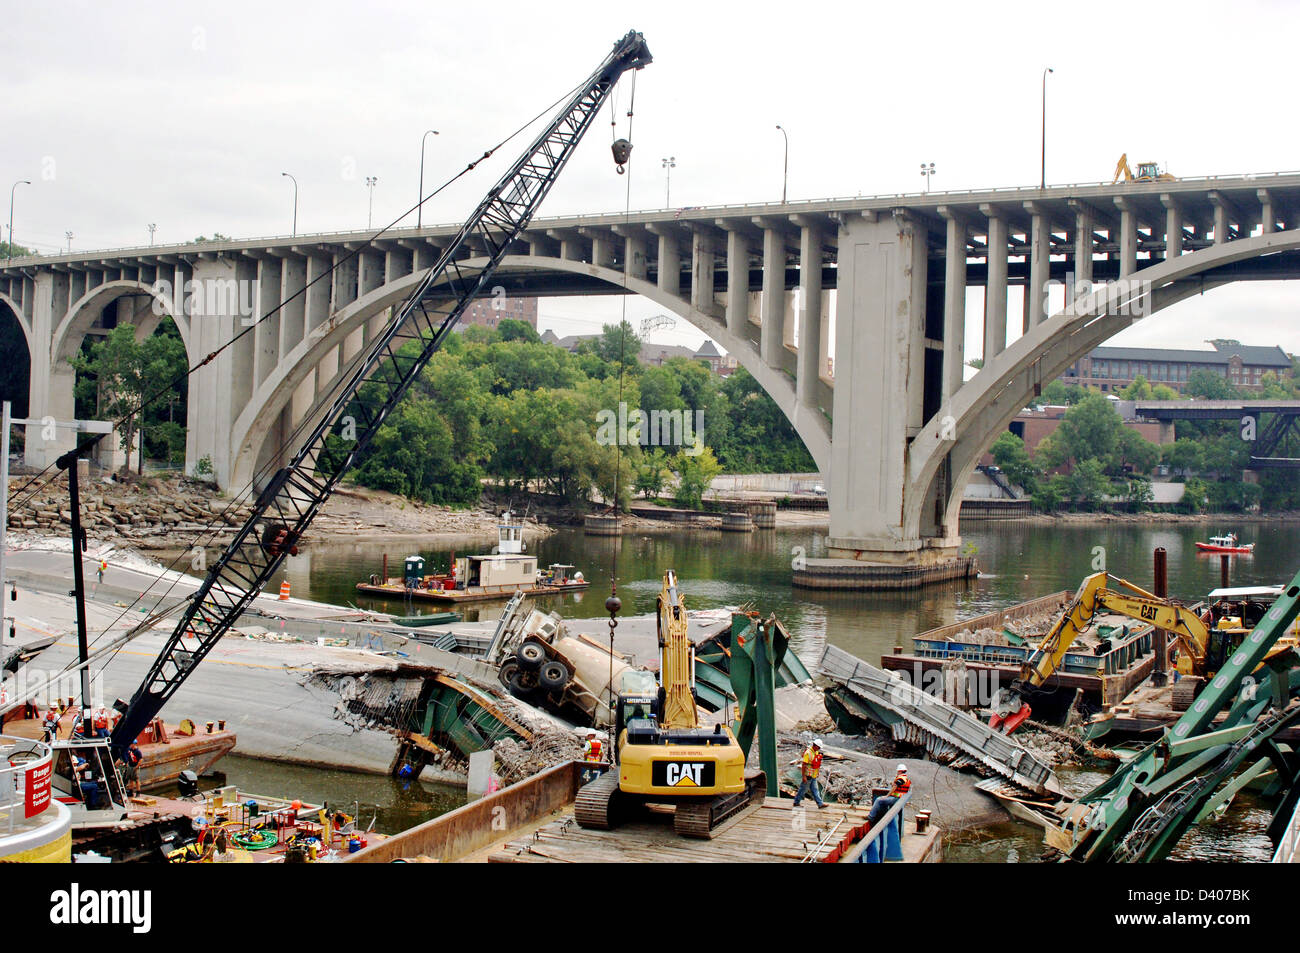 View of the remains of the I-35 bridge collapse and recovery efforts August 16, 2007 in Minneapolis, MN. The bridge - Stock Image